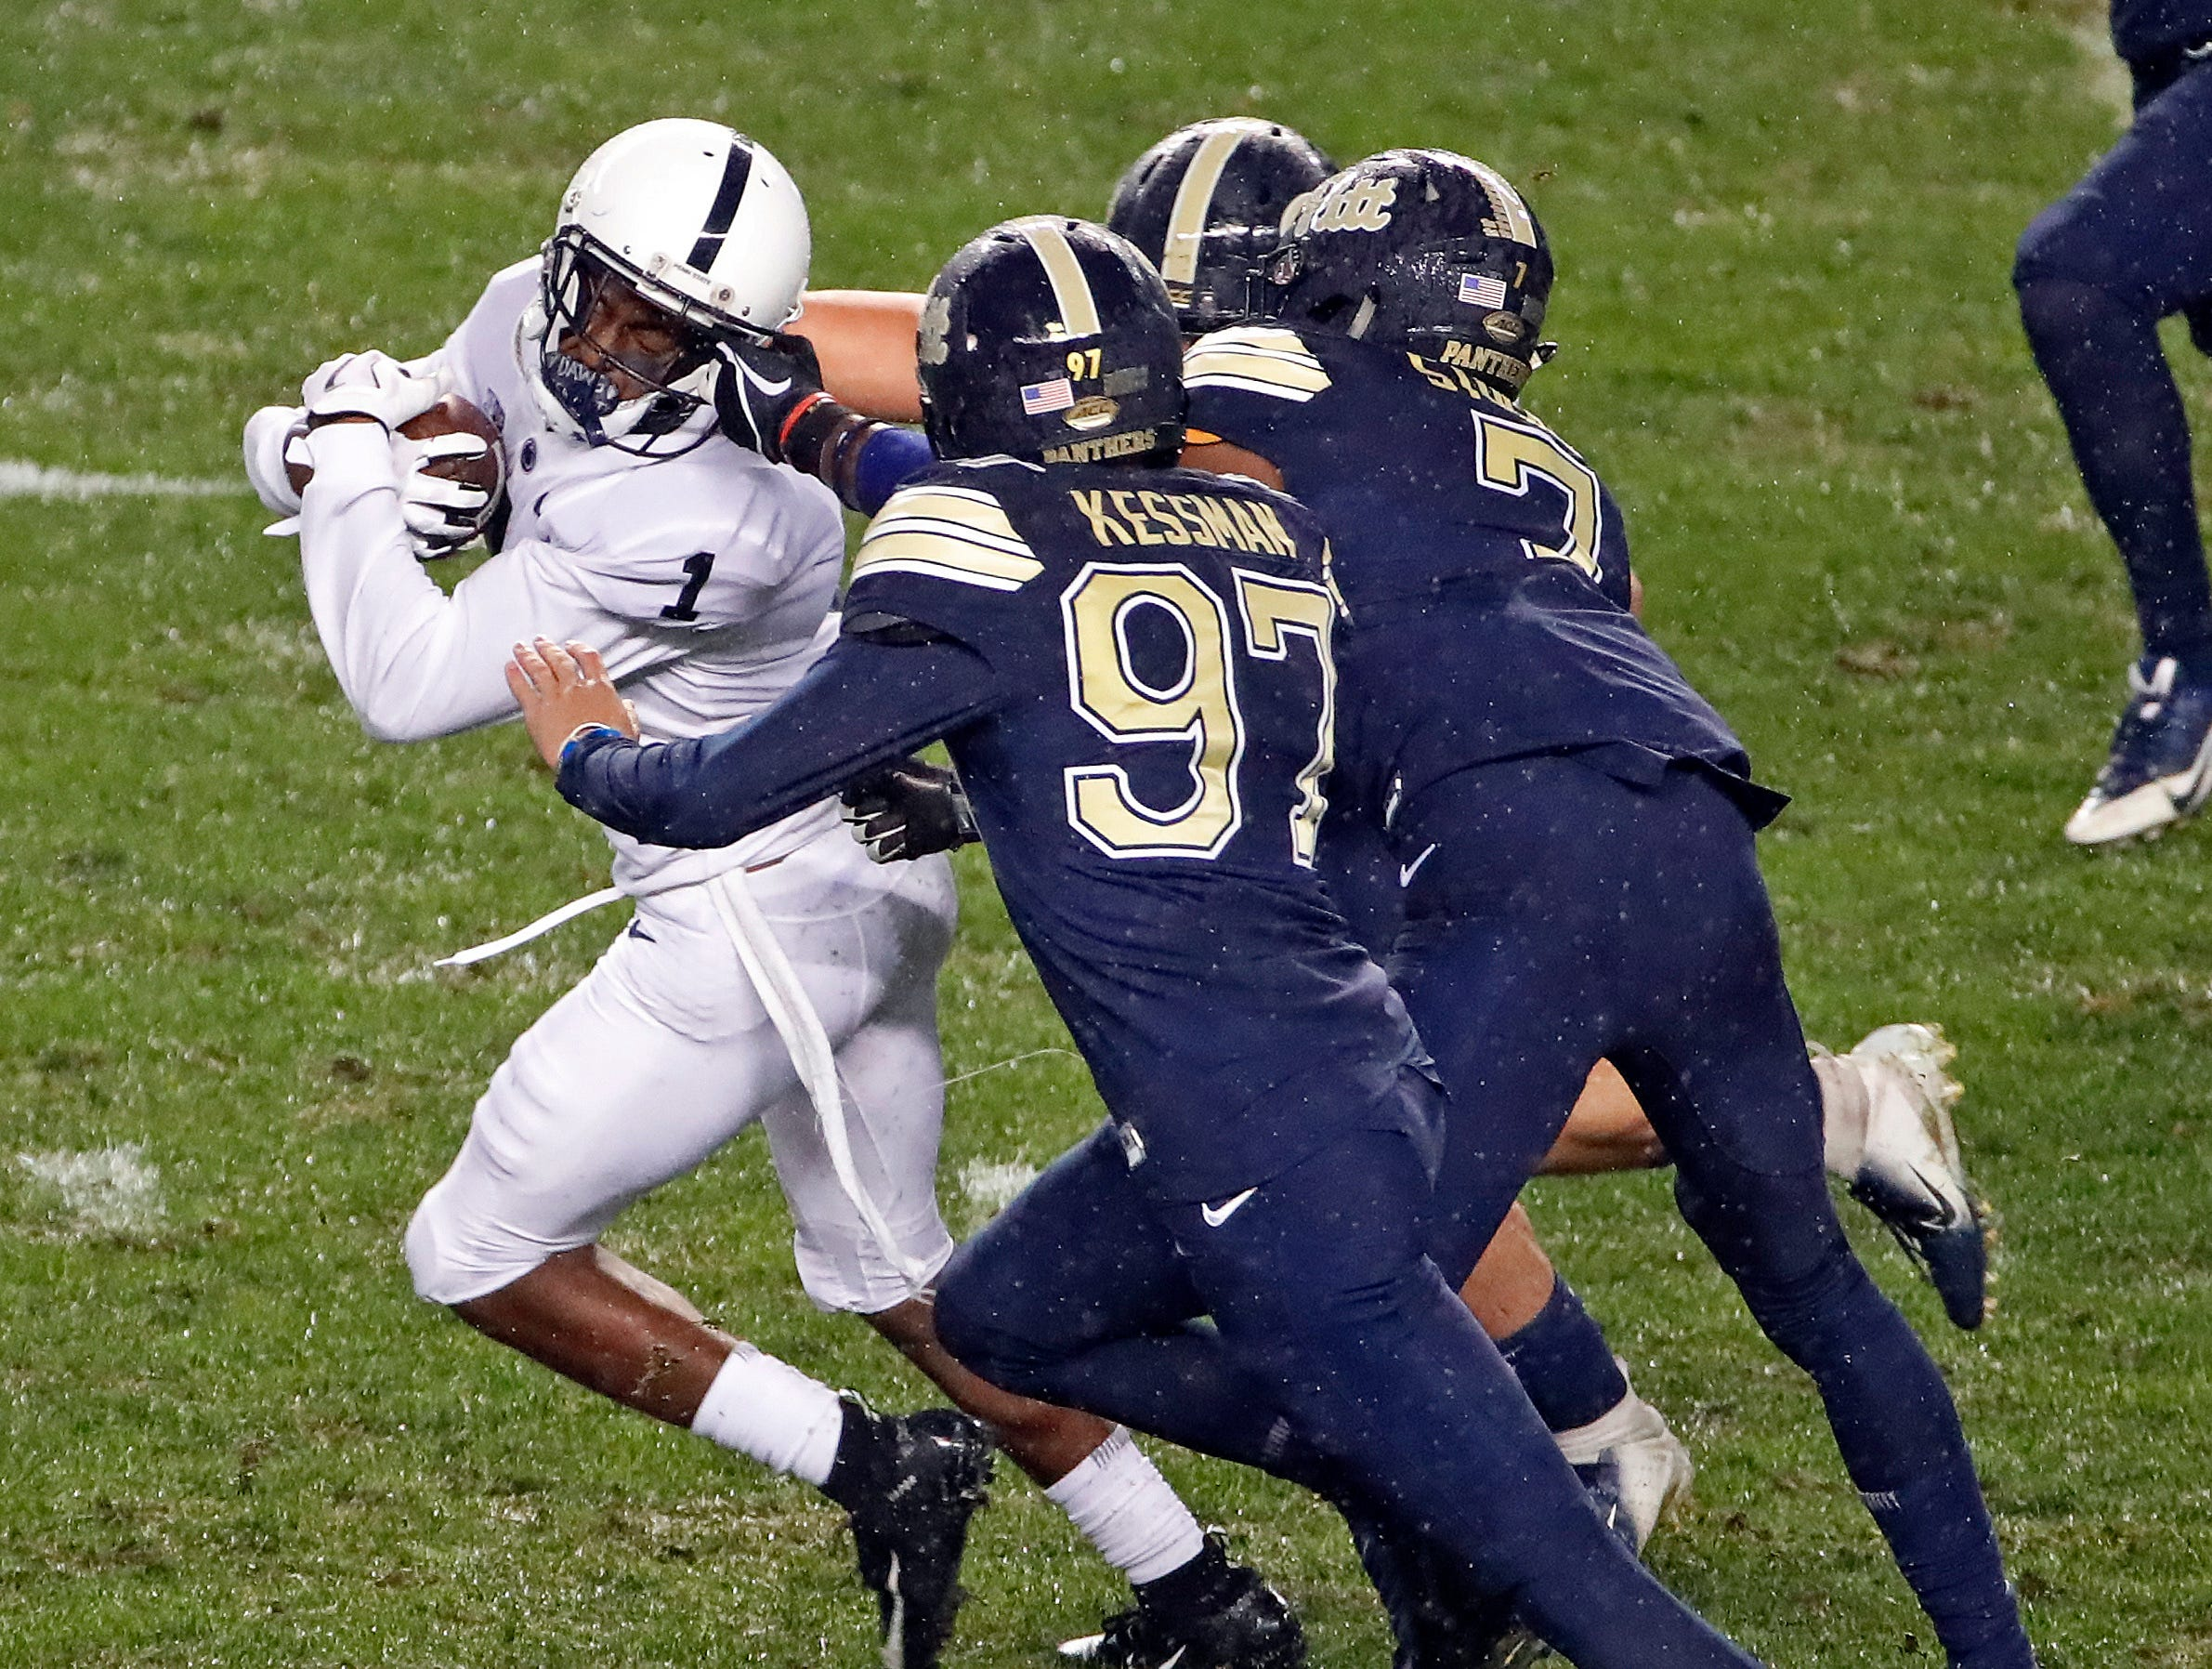 Penn State wide receiver KJ Hamler (1) is hauled down by the face mask by Pittsburgh defensive back Jazzee Stocker (7) during the first half of an NCAA college football game in Pittsburgh, Saturday, Sept. 8, 2018. A penalty was called against Pittsburgh.